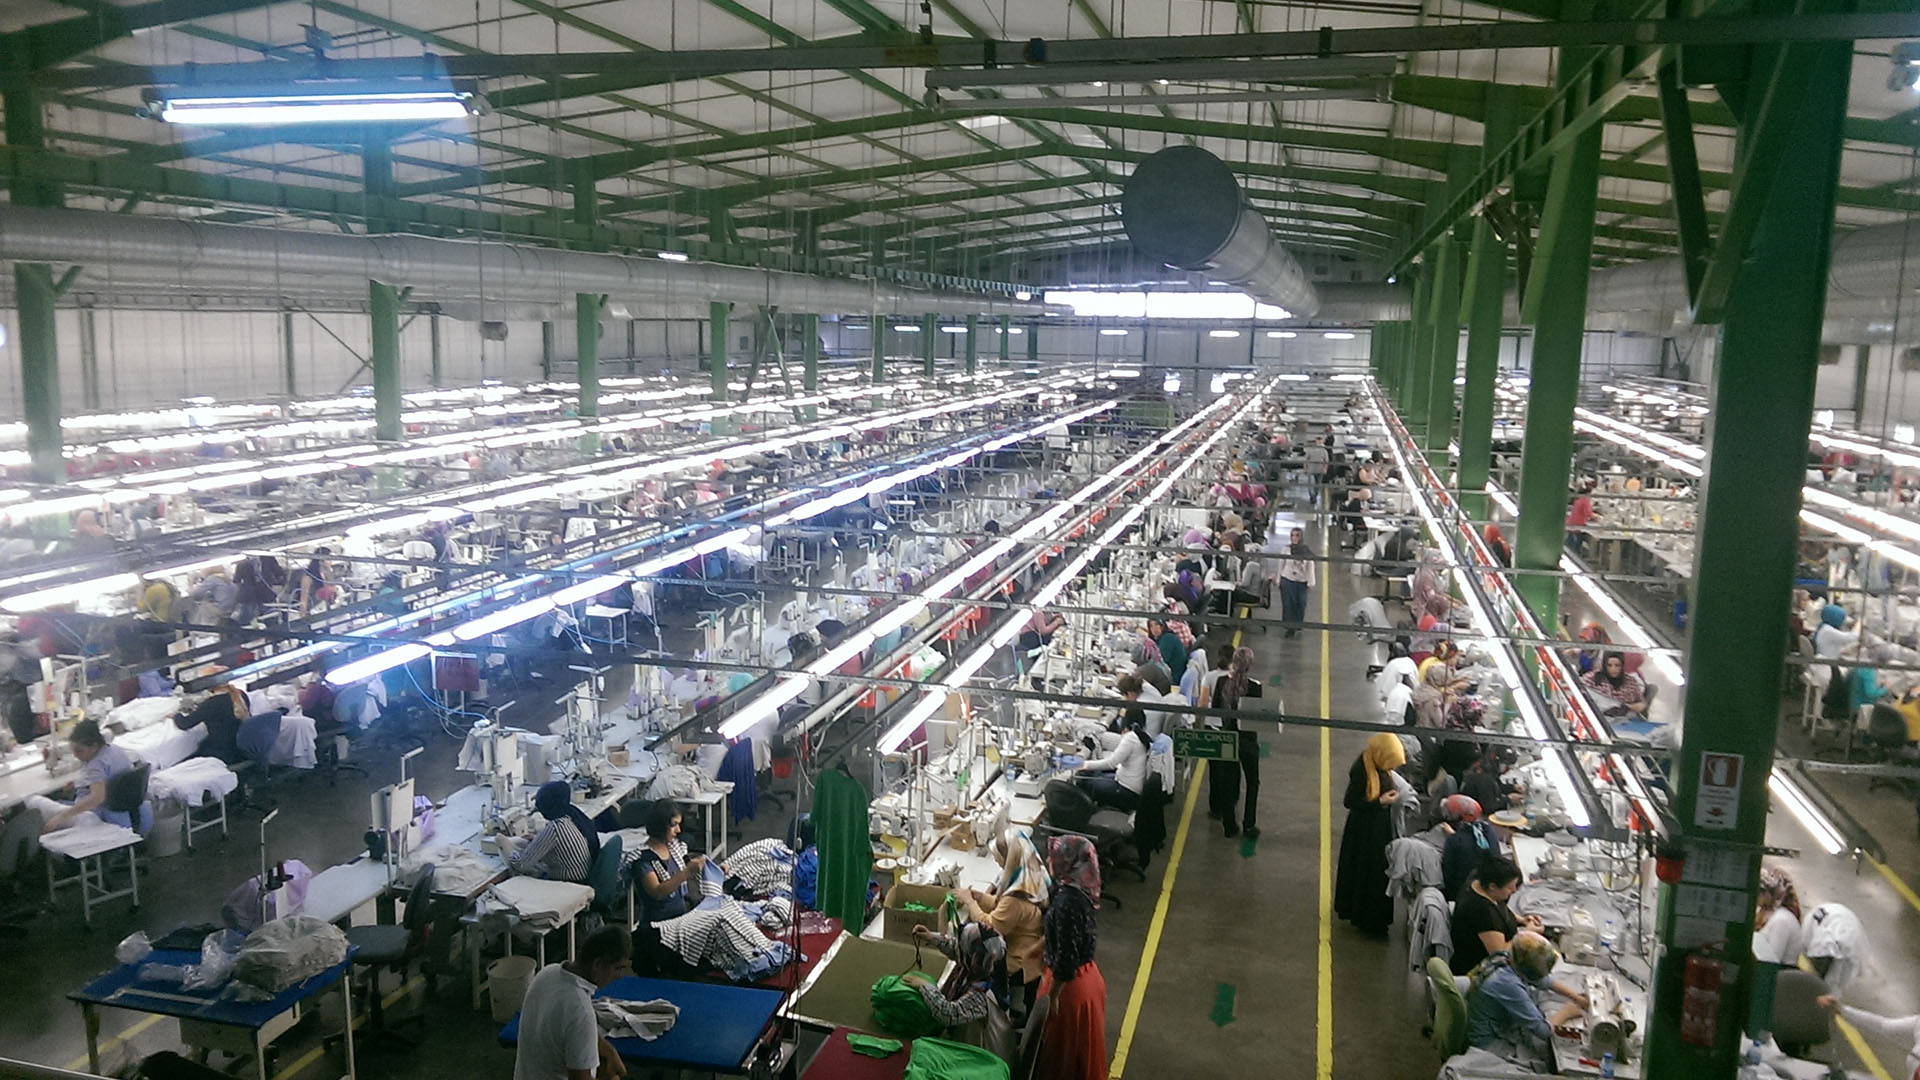 inside-working-factory.jpg